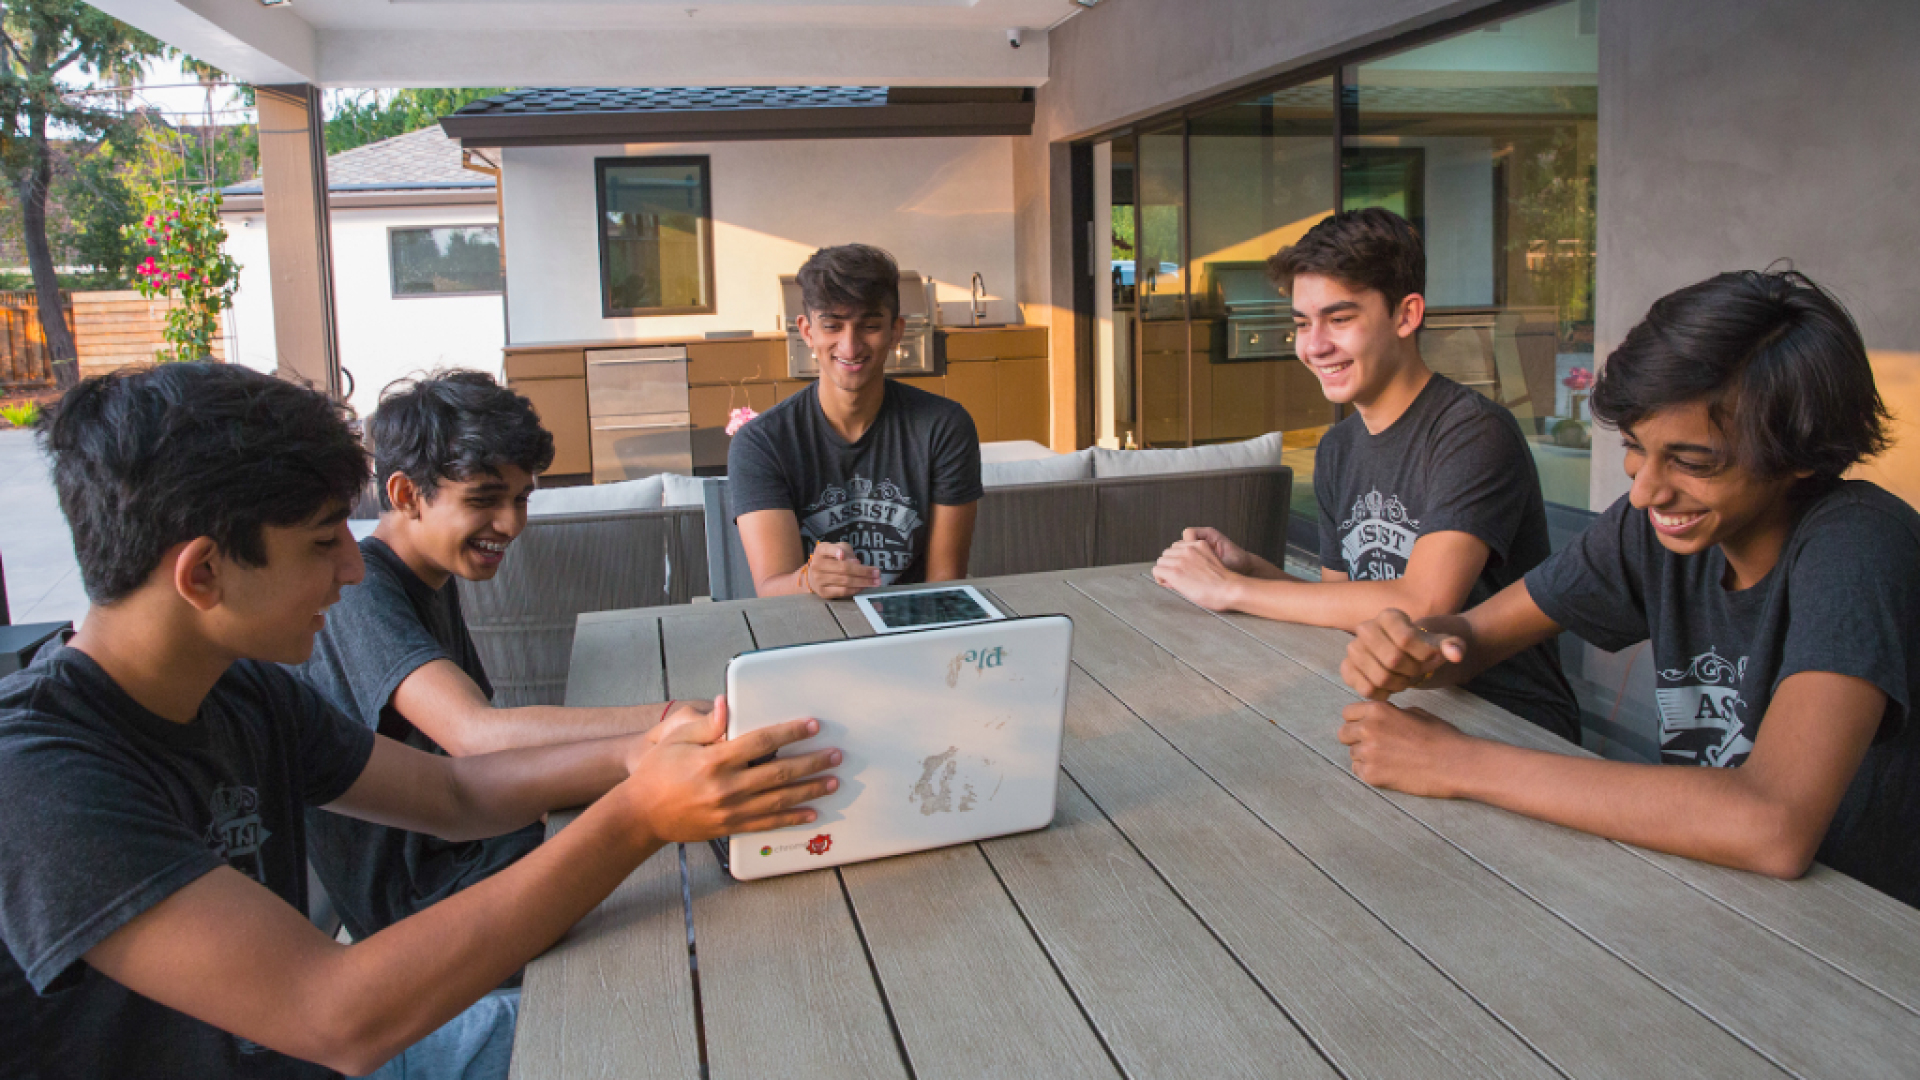 a group of middle school boys sits around a table outdoors with a laptop and a tablet